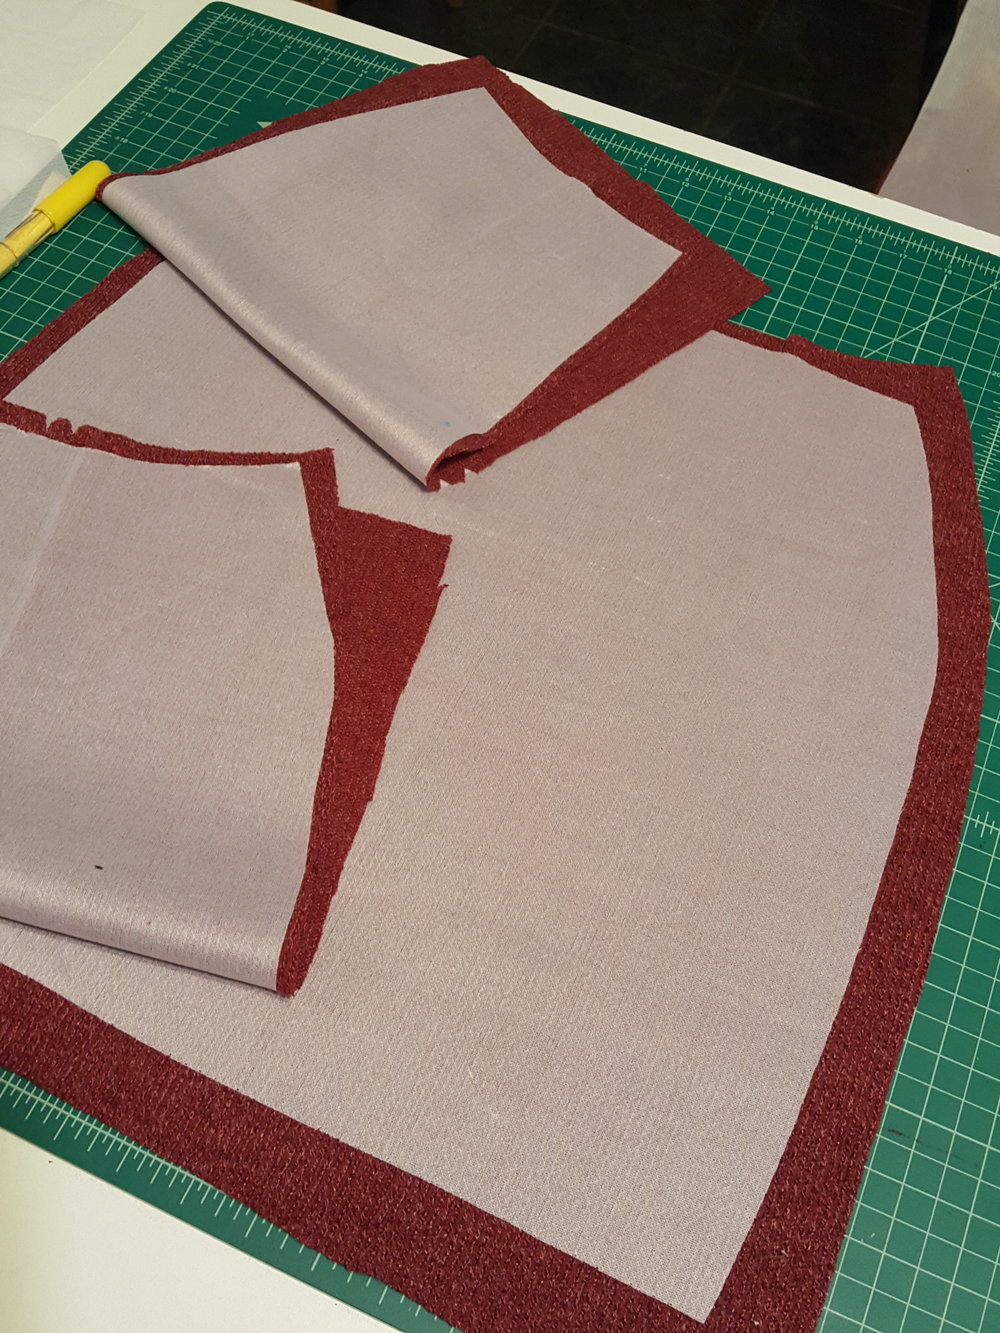 For interfacing, we both used Pellon #180 Knit – N – Stable. -